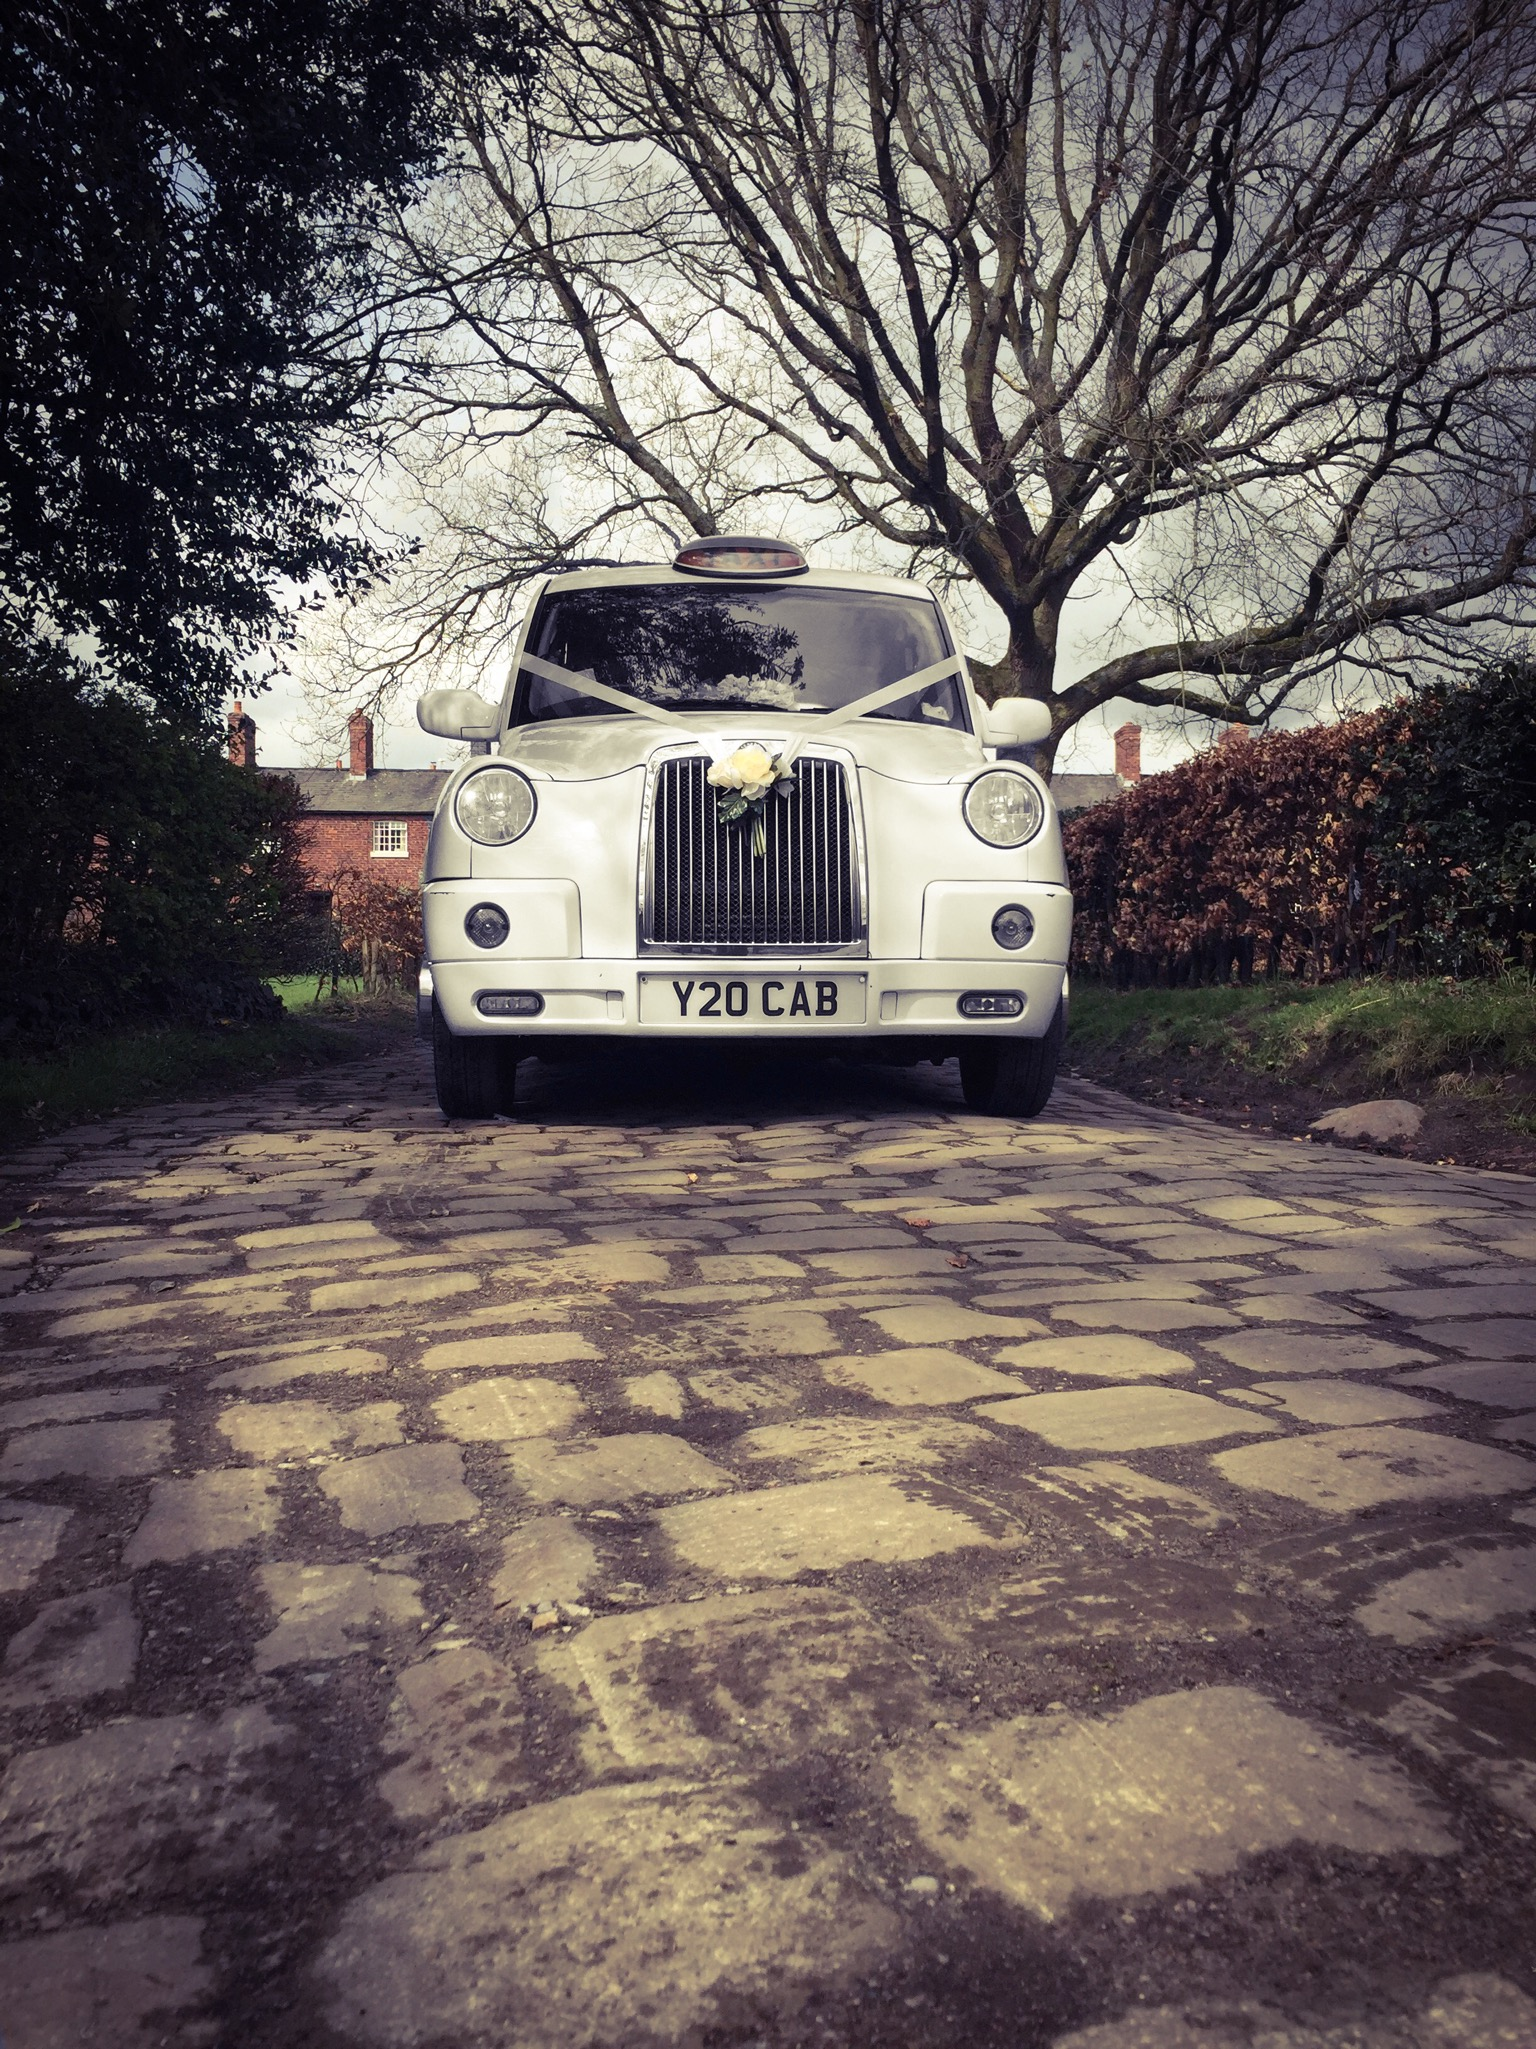 Norcliffe style wedding taxi